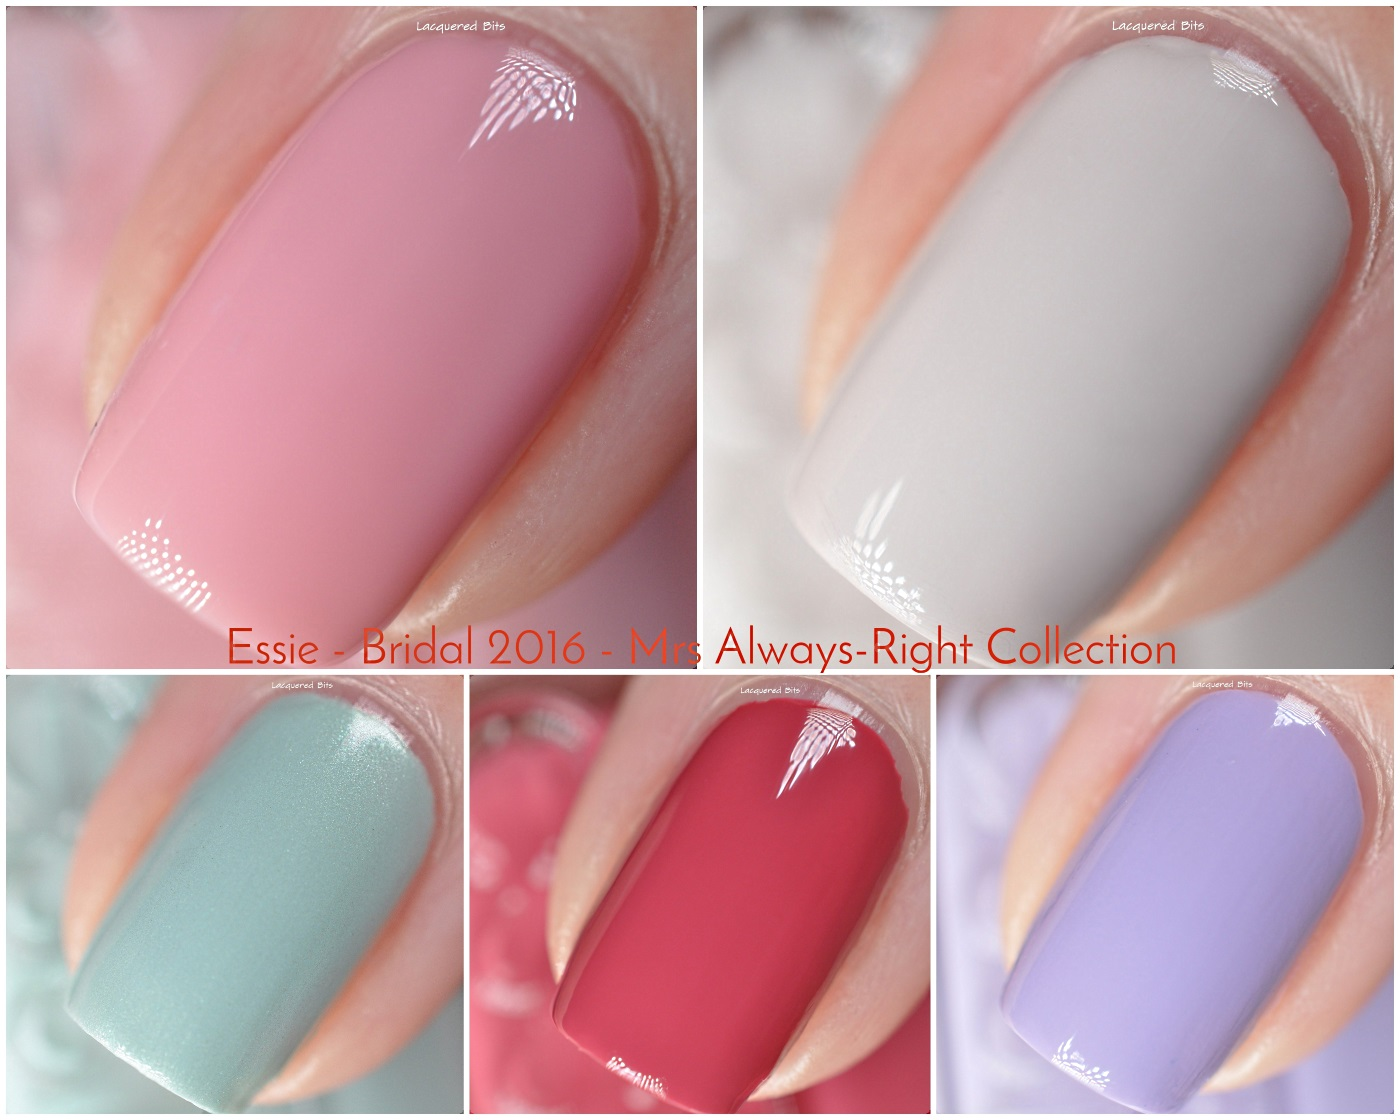 Essie Bridal 2016 - Mrs Always-Right Collection - Swatches & Review